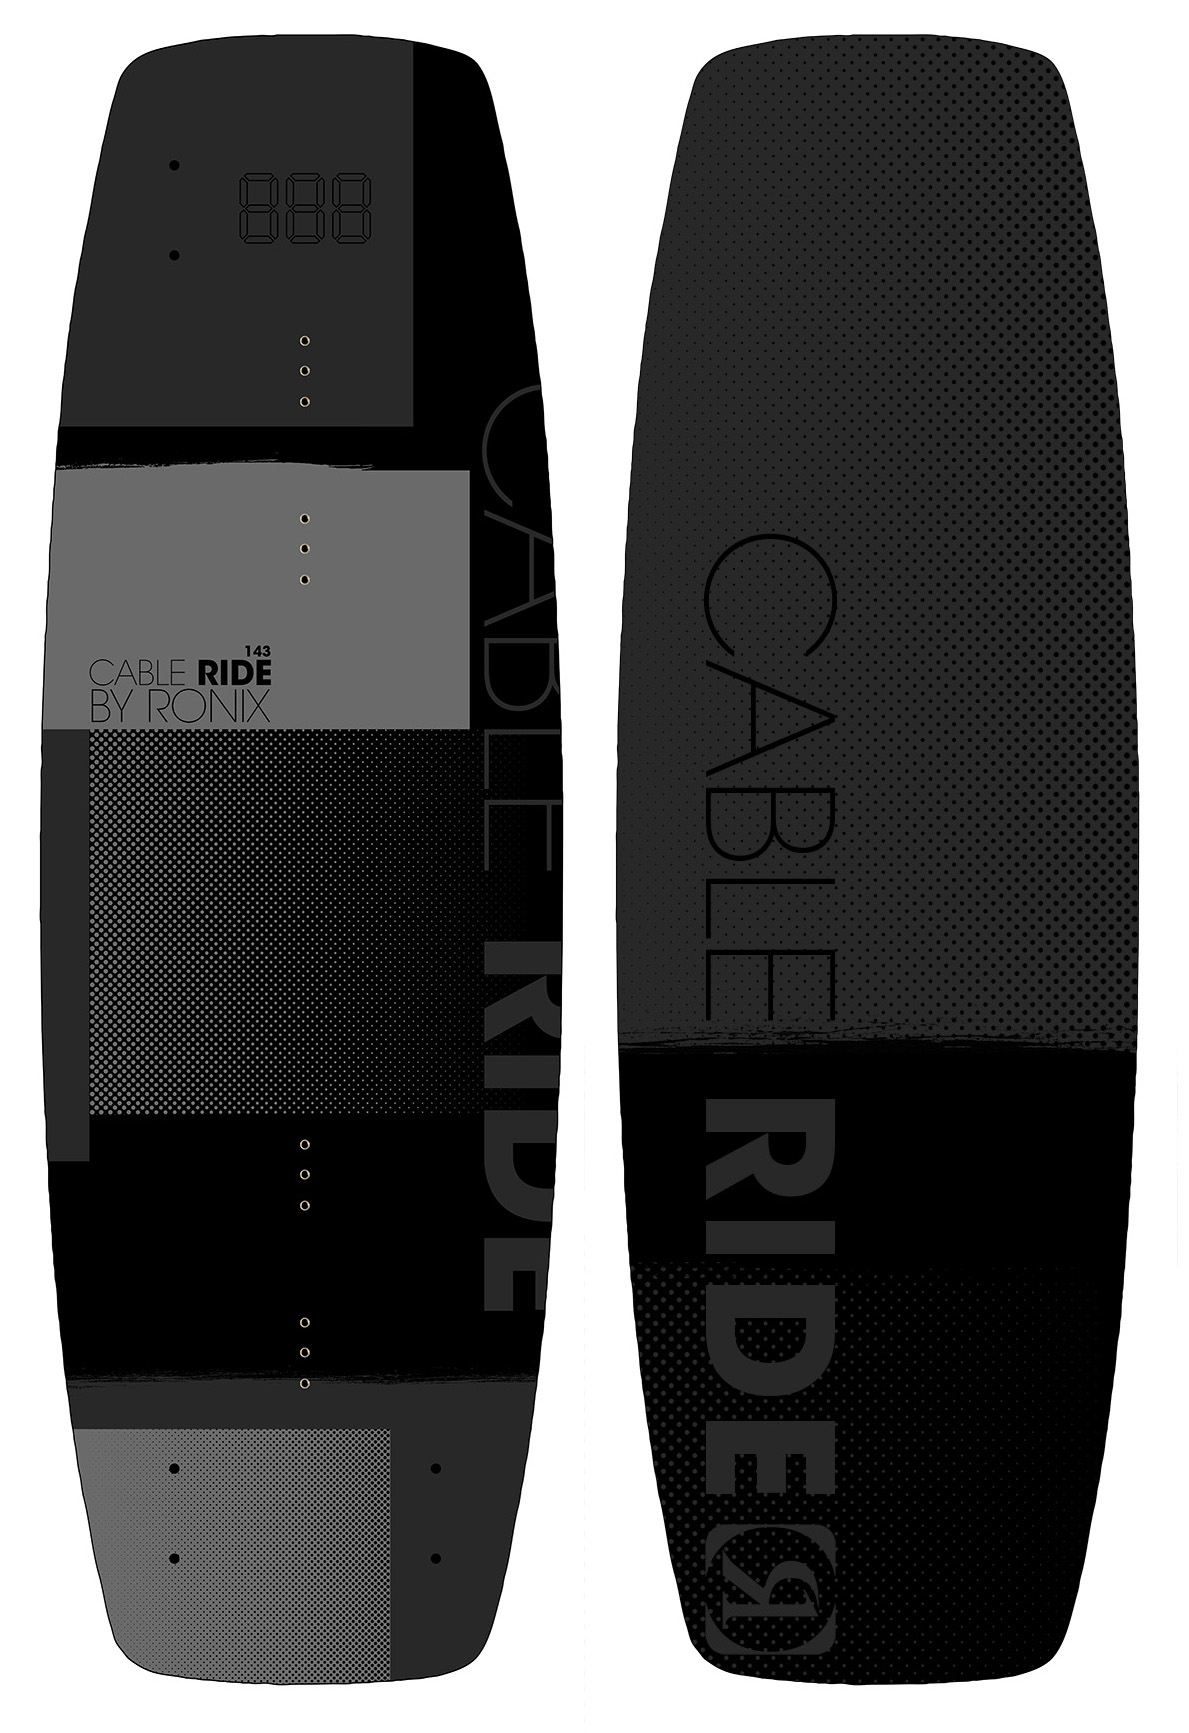 CABLE RIDE 143 WAKEBOARD - BLACK RONIX 2018